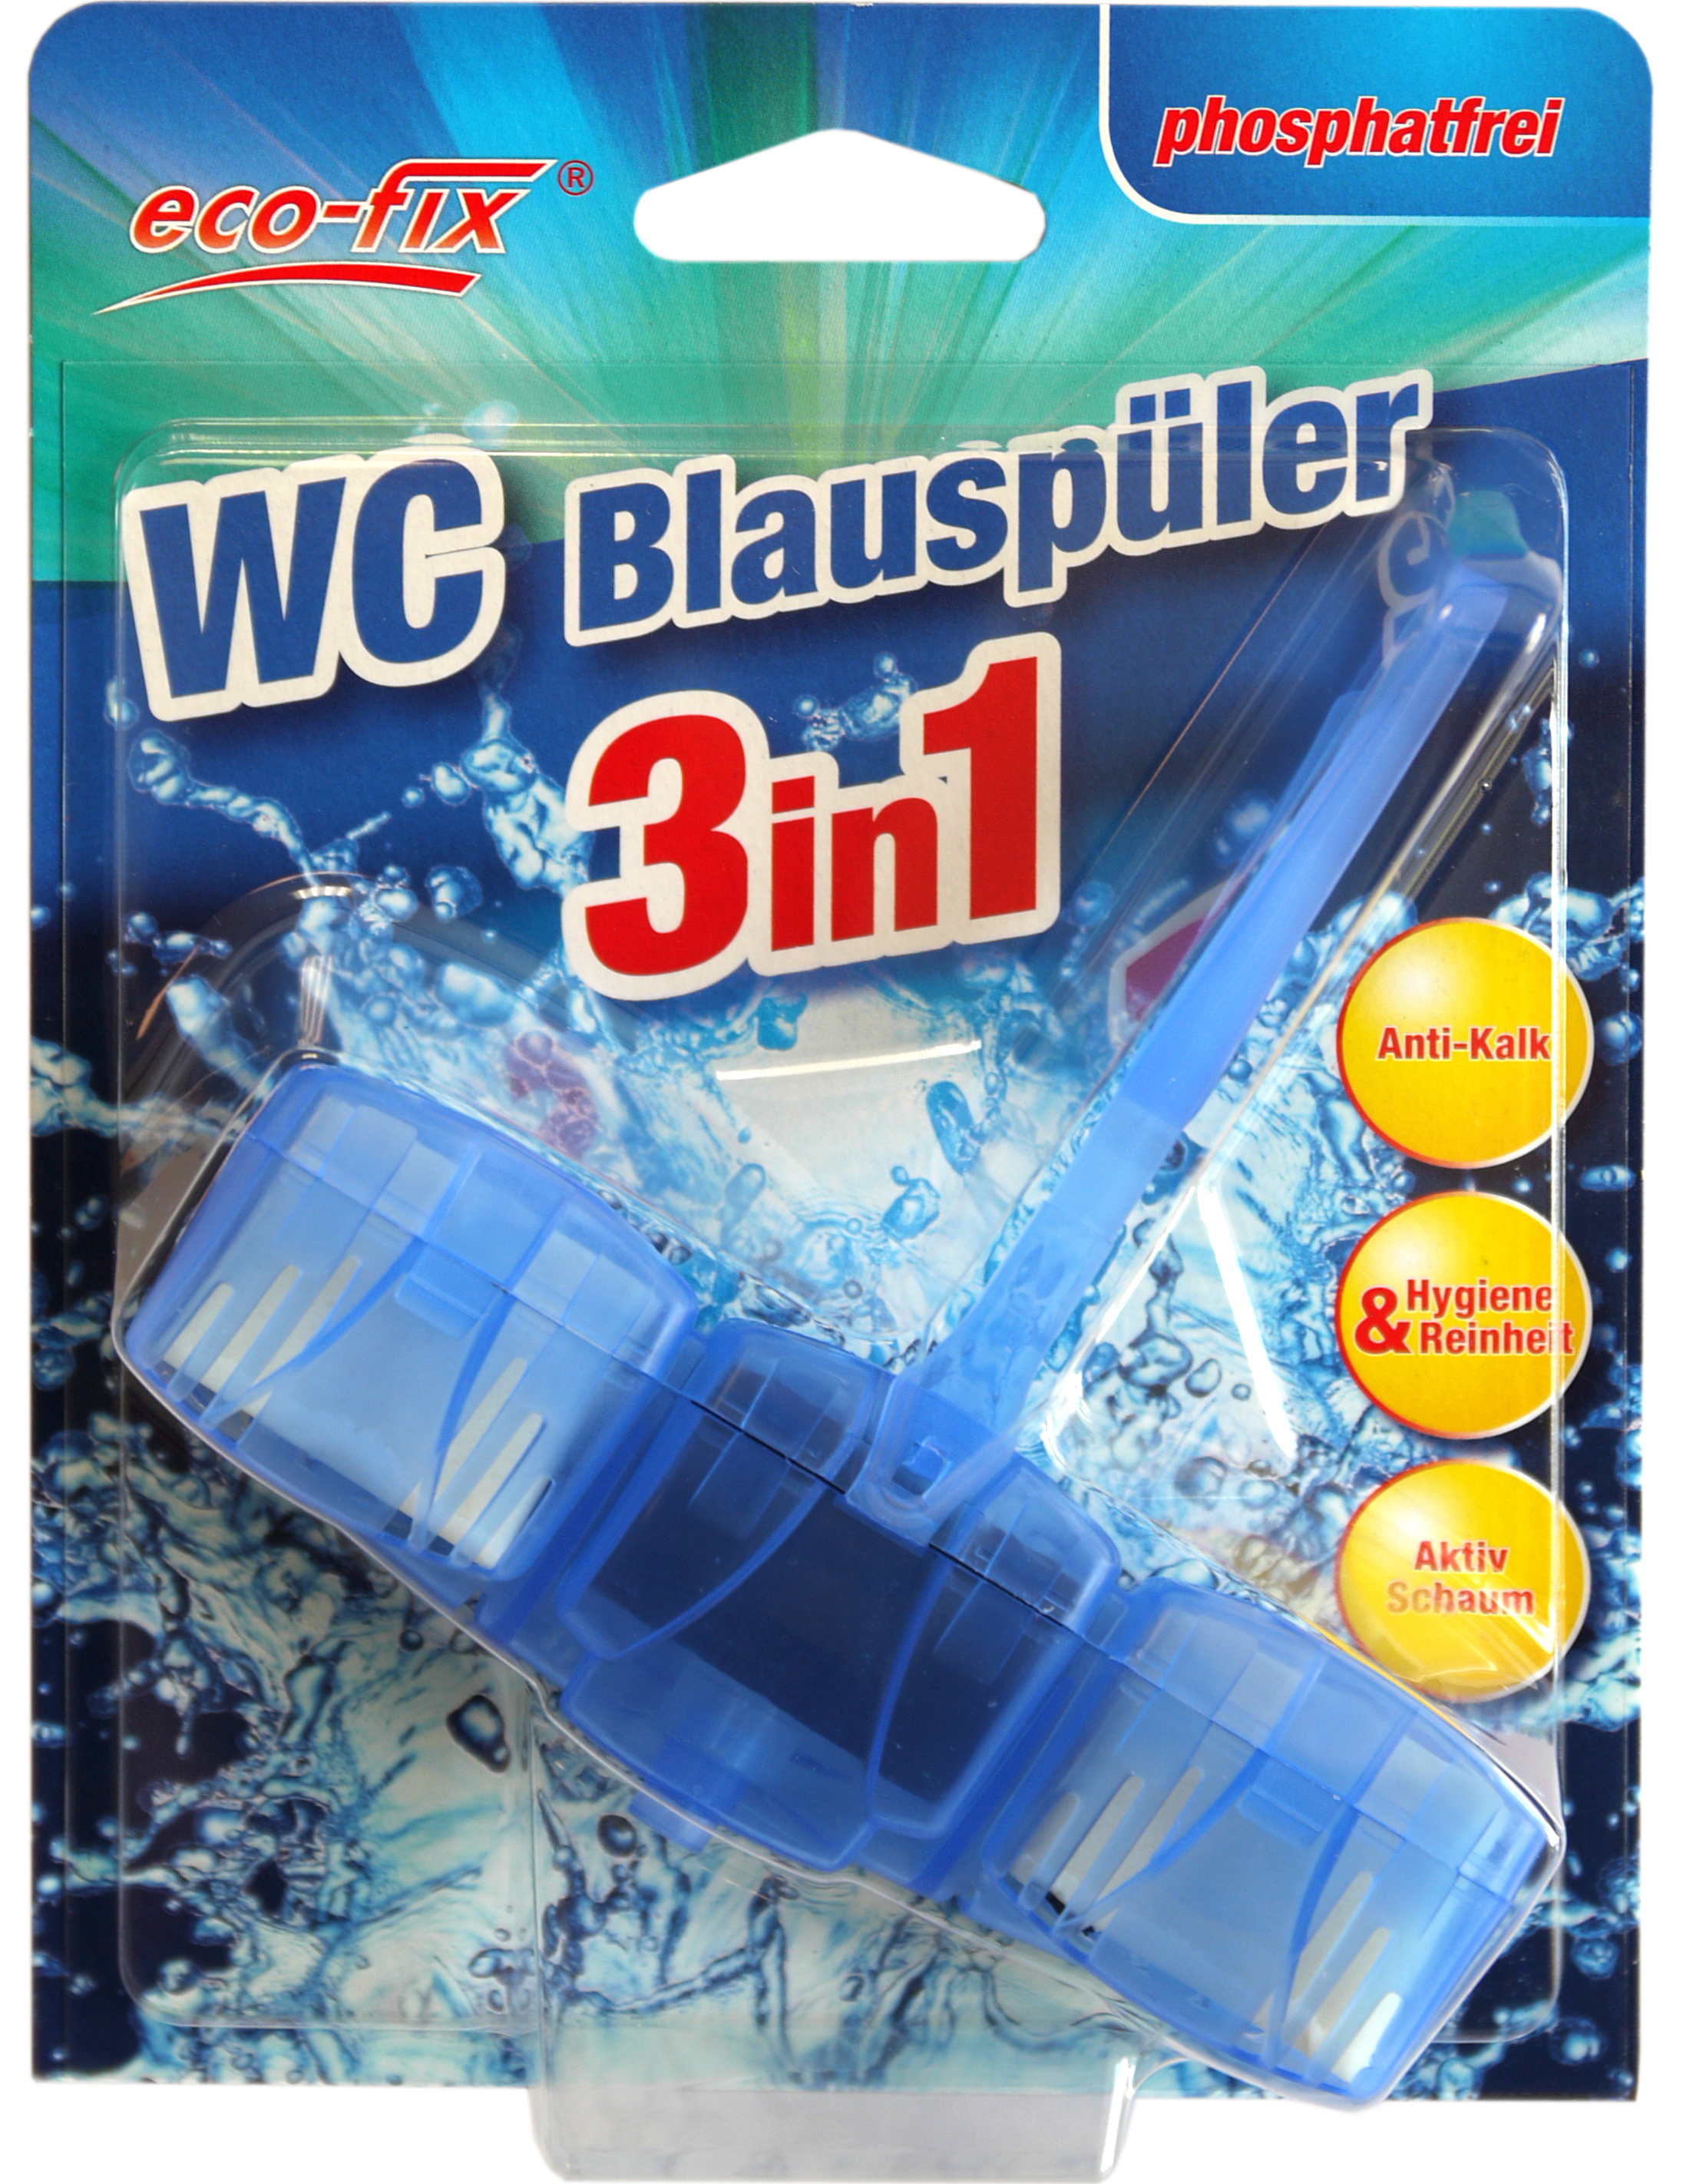 00859 - eco-fix WC Blauspüler 3in1 45 g